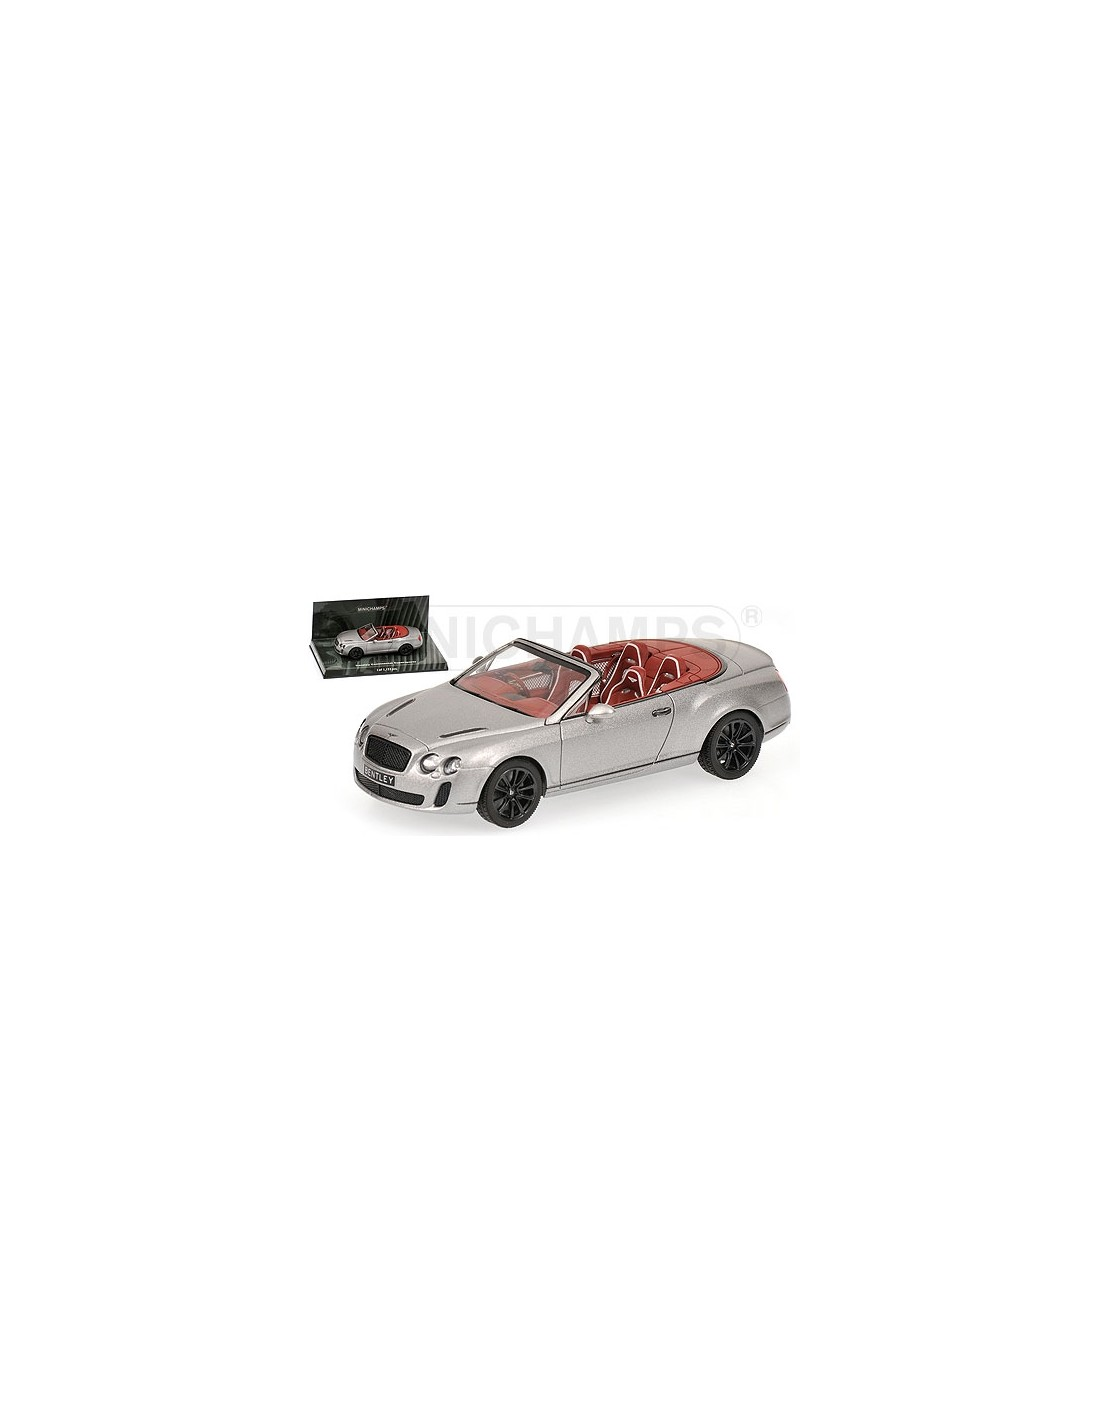 Bentley Continental Gt Convertible 1900 Gray For Sale: MINICHAMPS BENTLEY CONTINENTAL SUPERSPORTS CABRIOLET